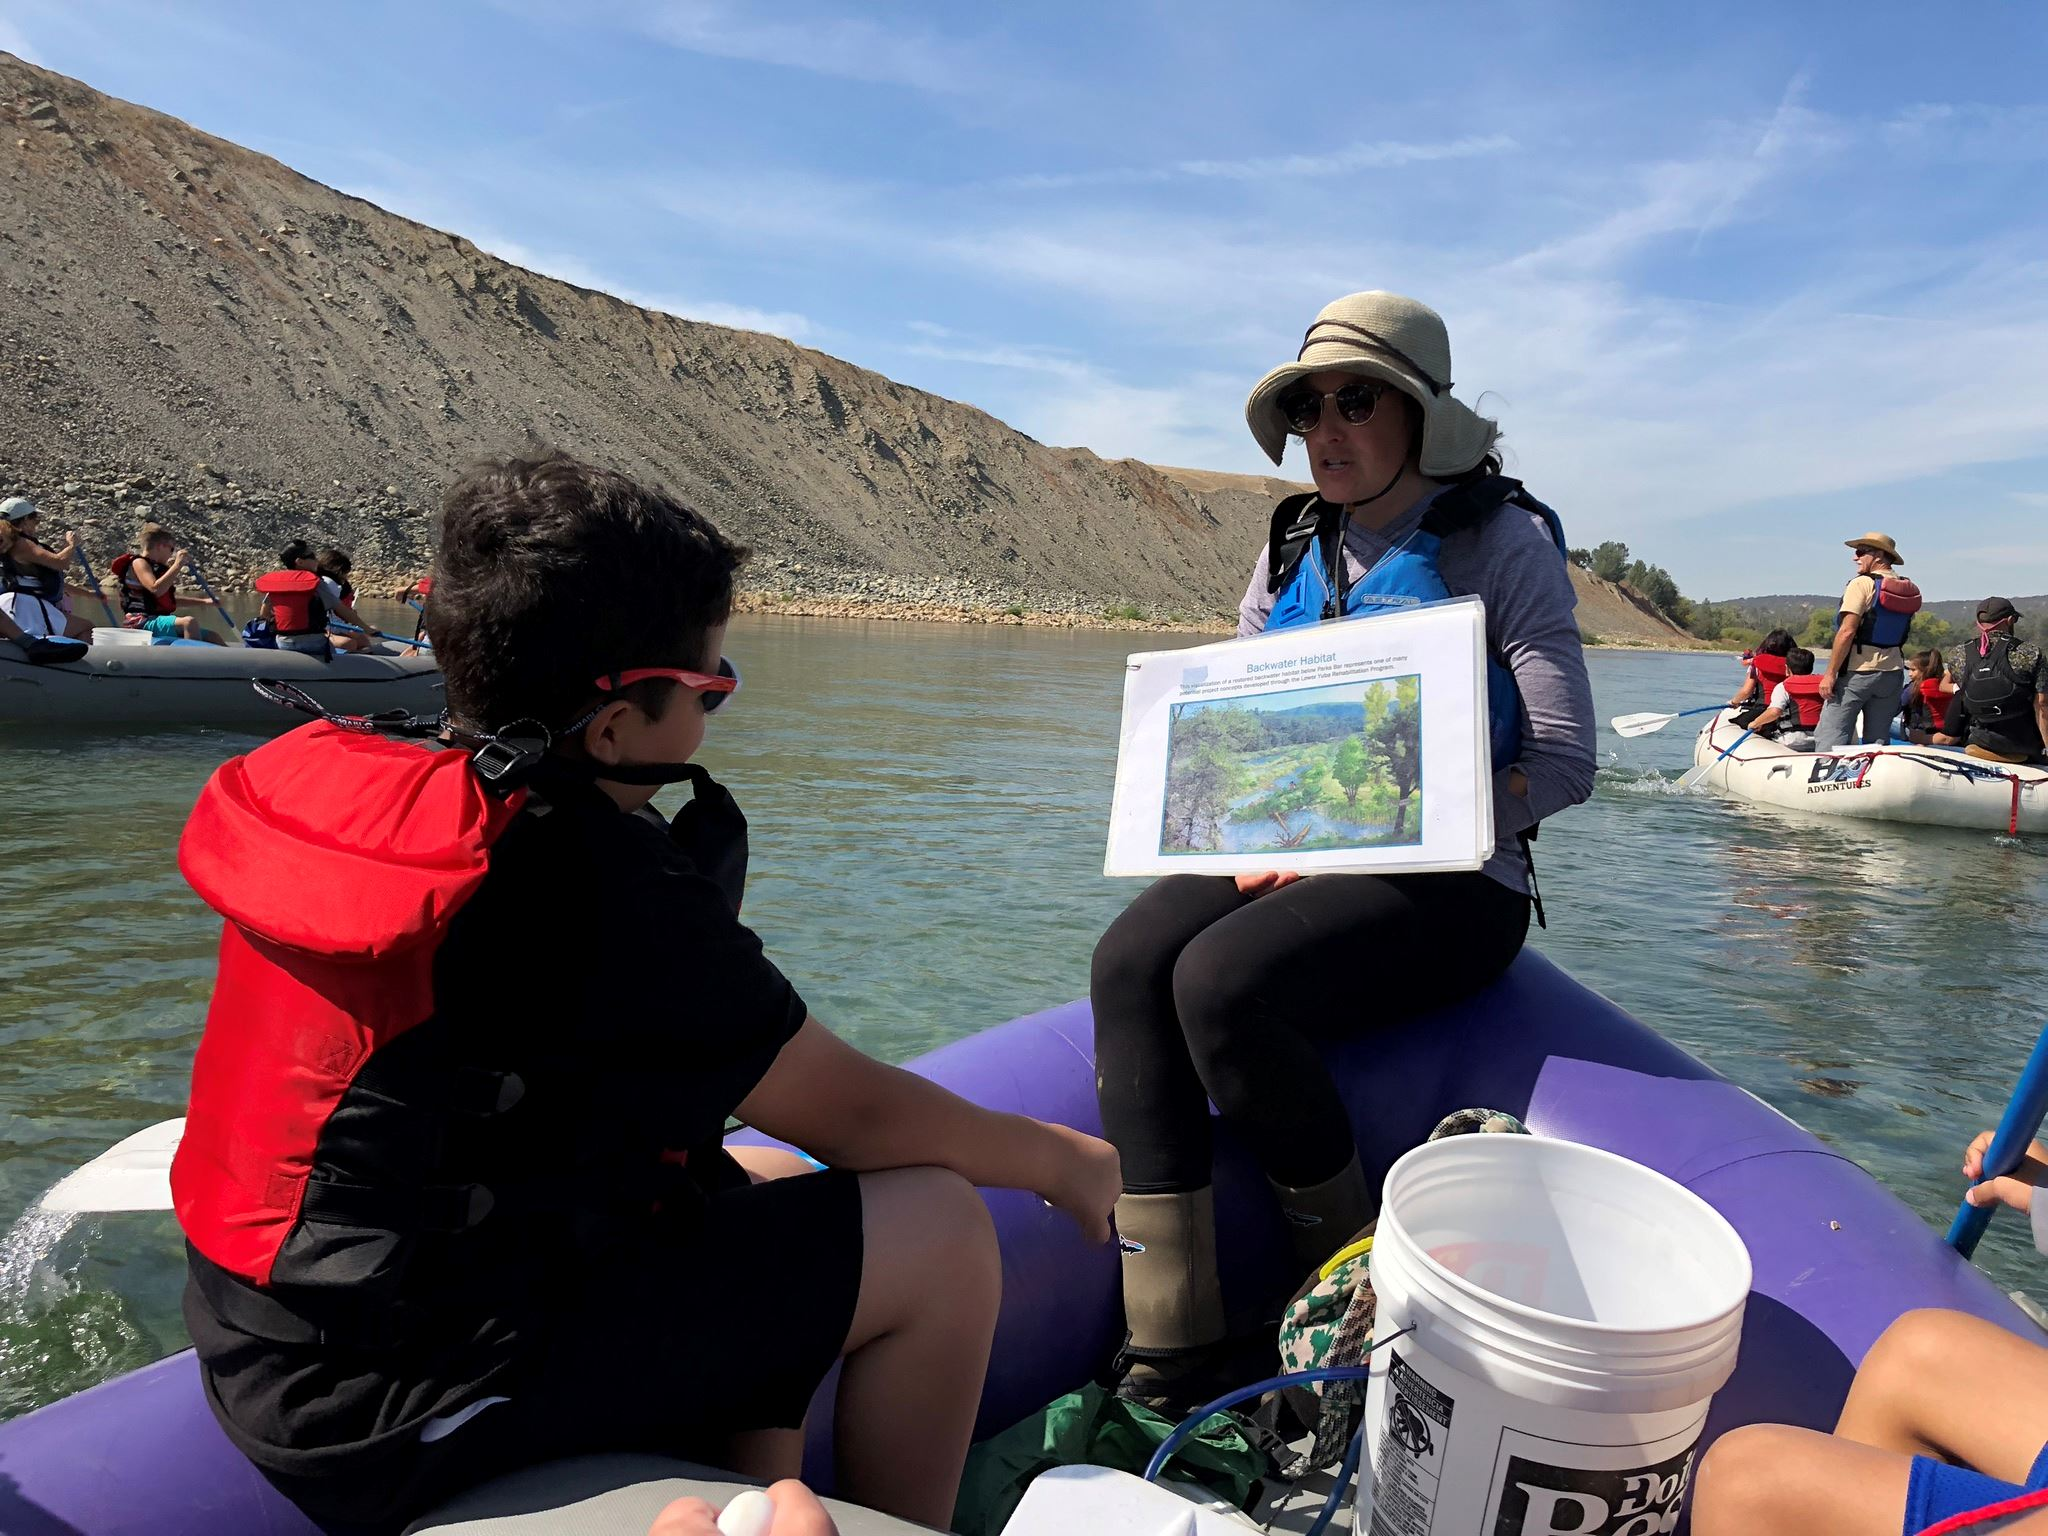 Salmon Expedition - Ella Elementary River Tour  Opens in new window